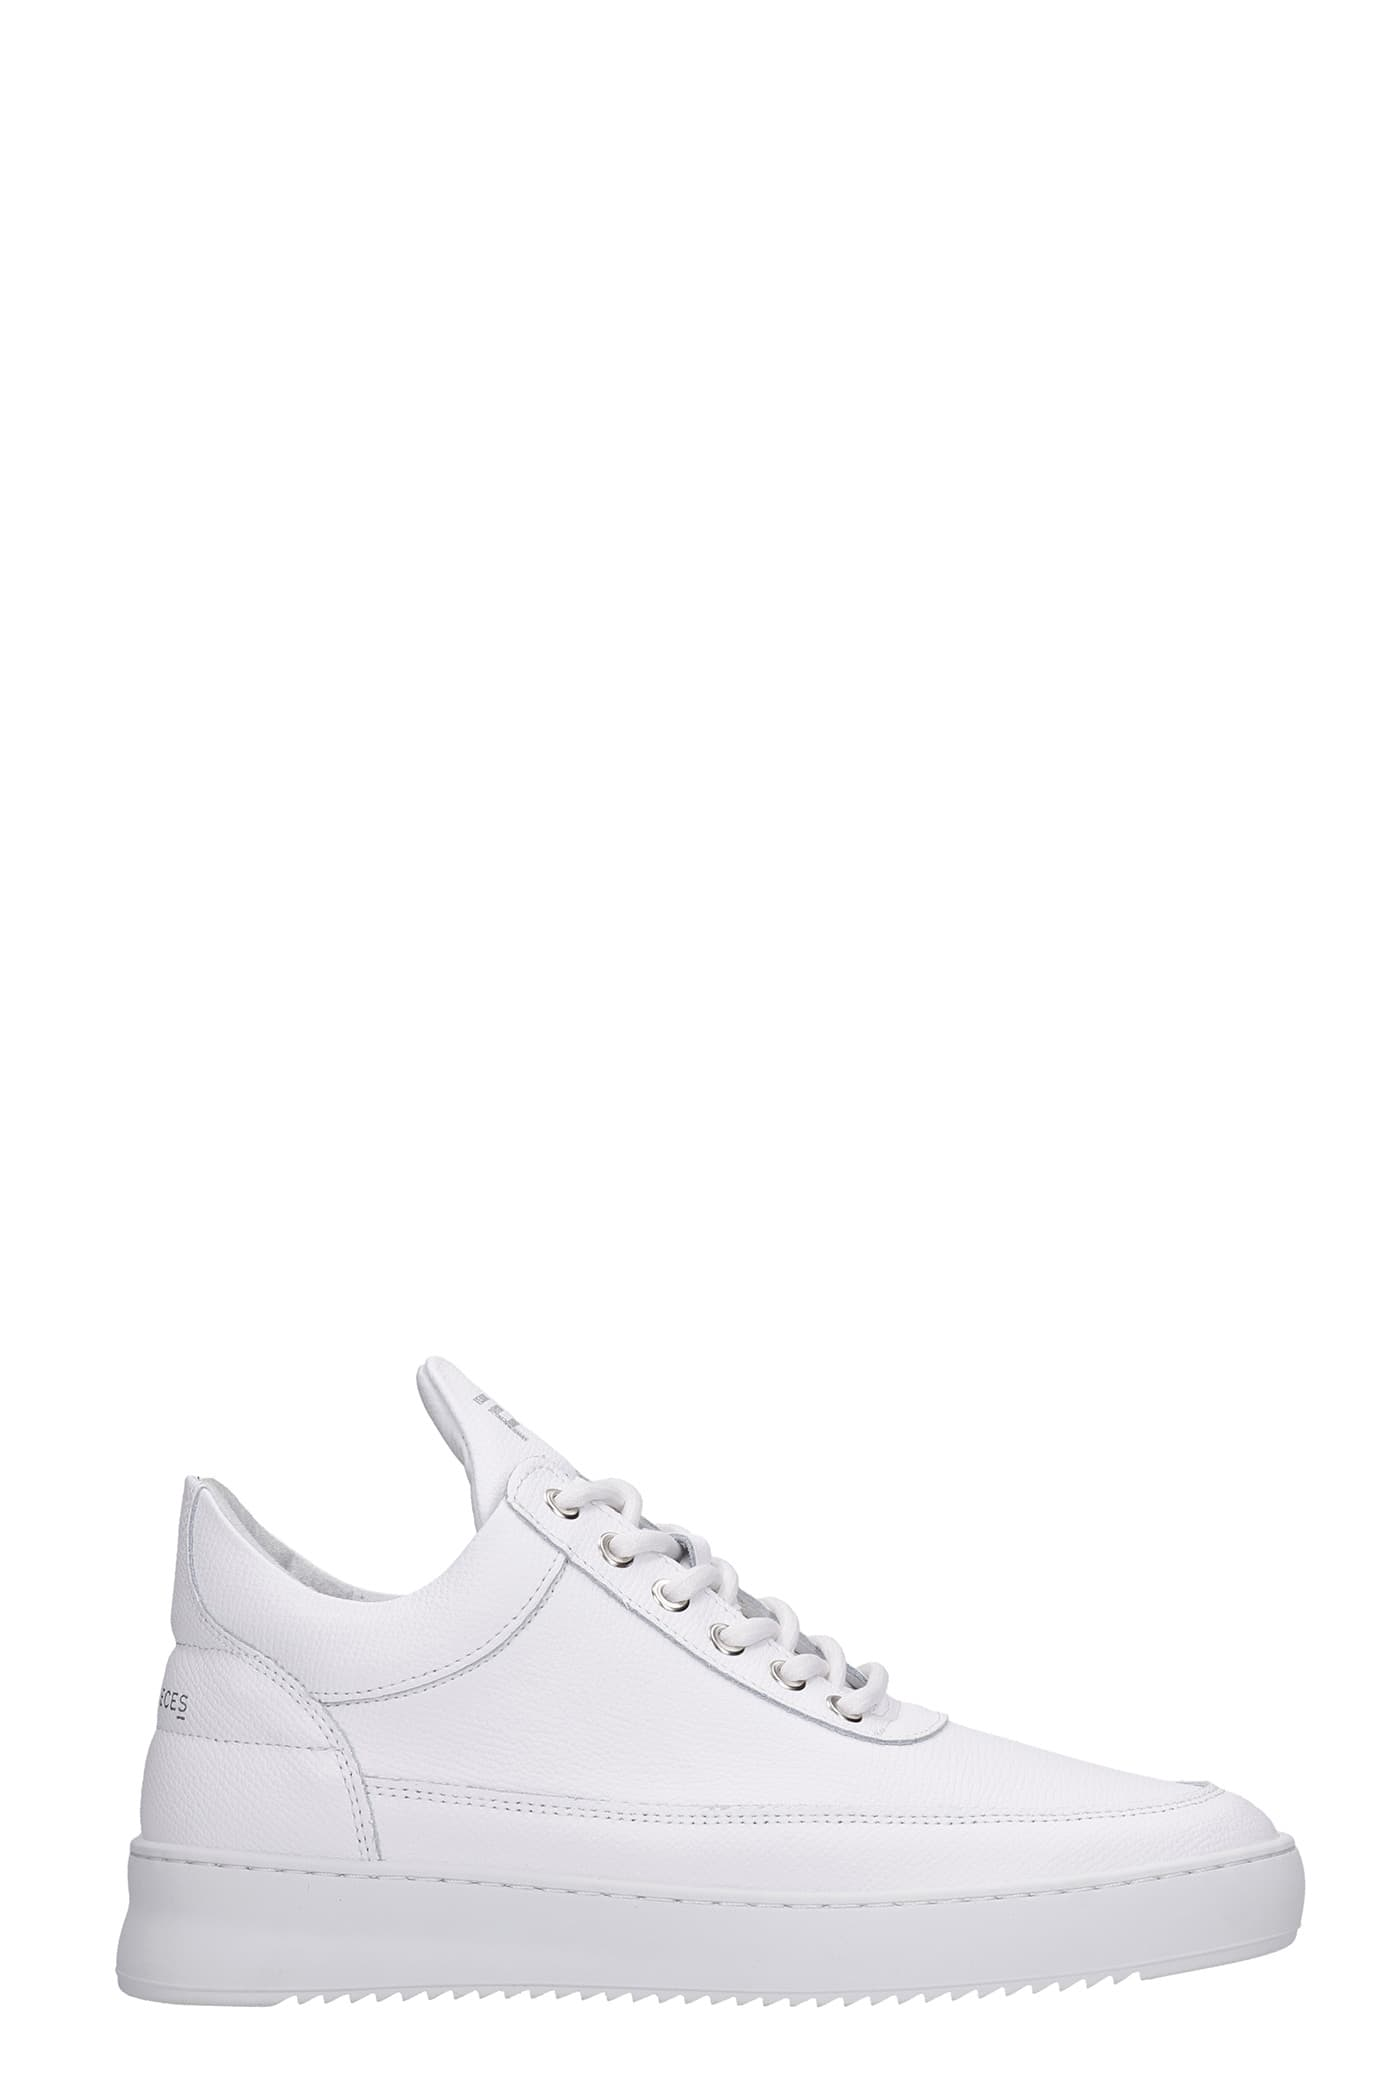 Low Top Ripple Sneakers In White Leather